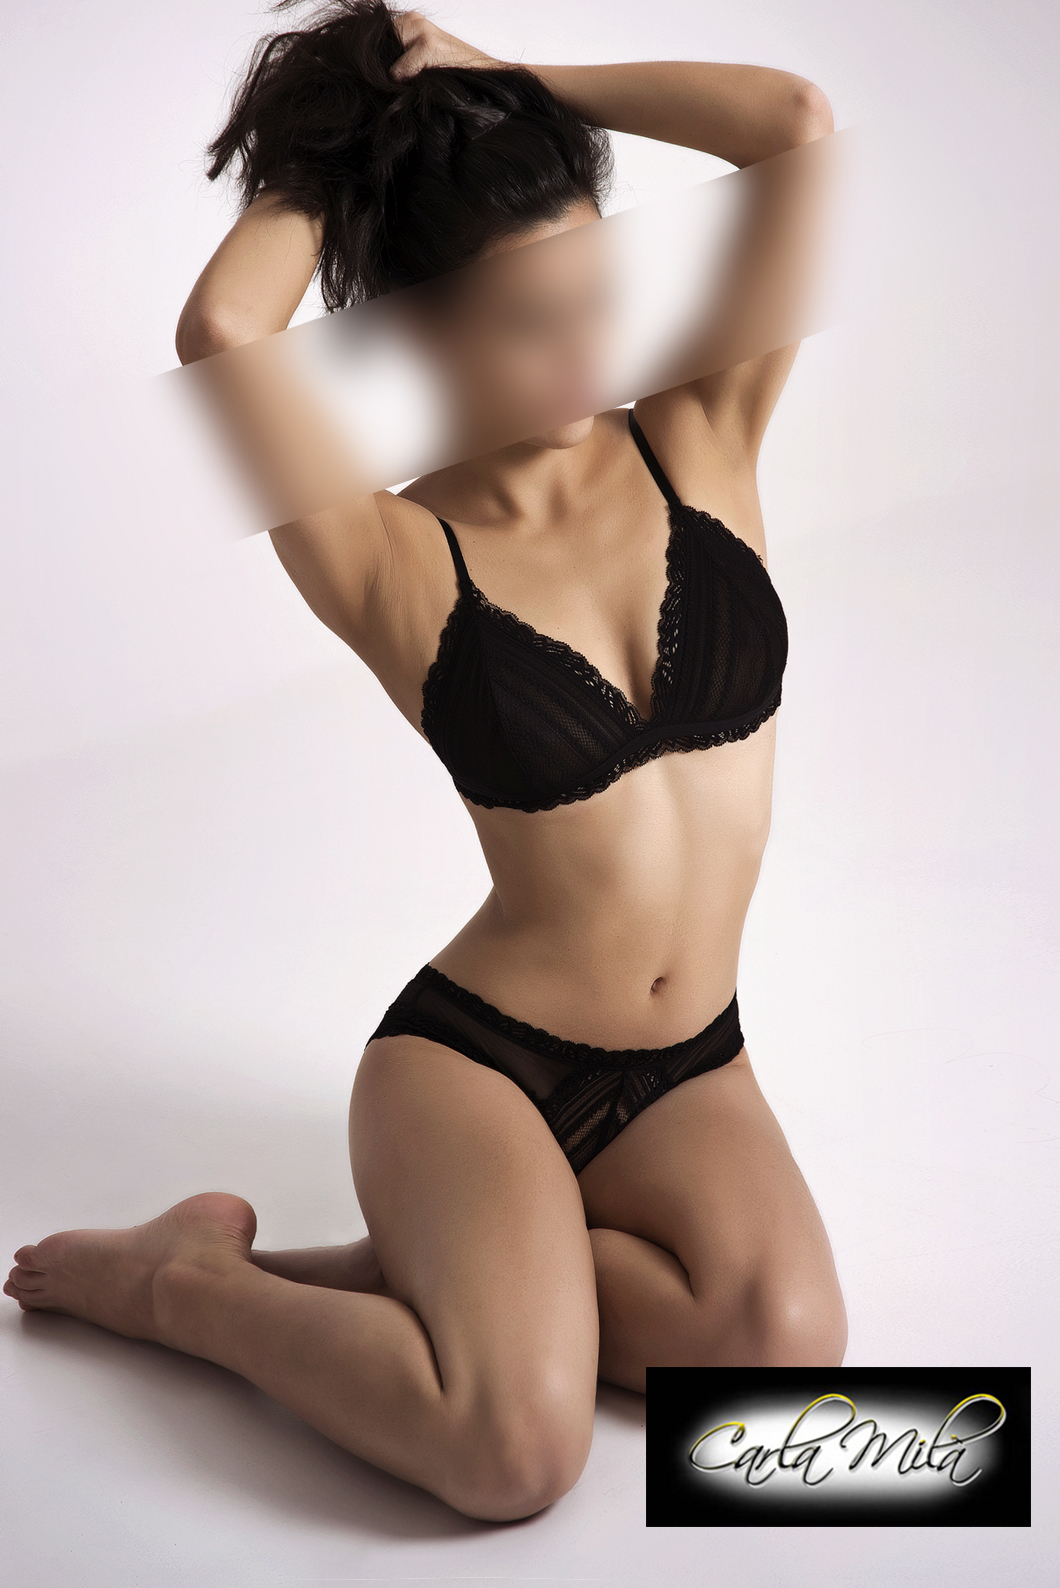 Cristina. Escort Madrid.